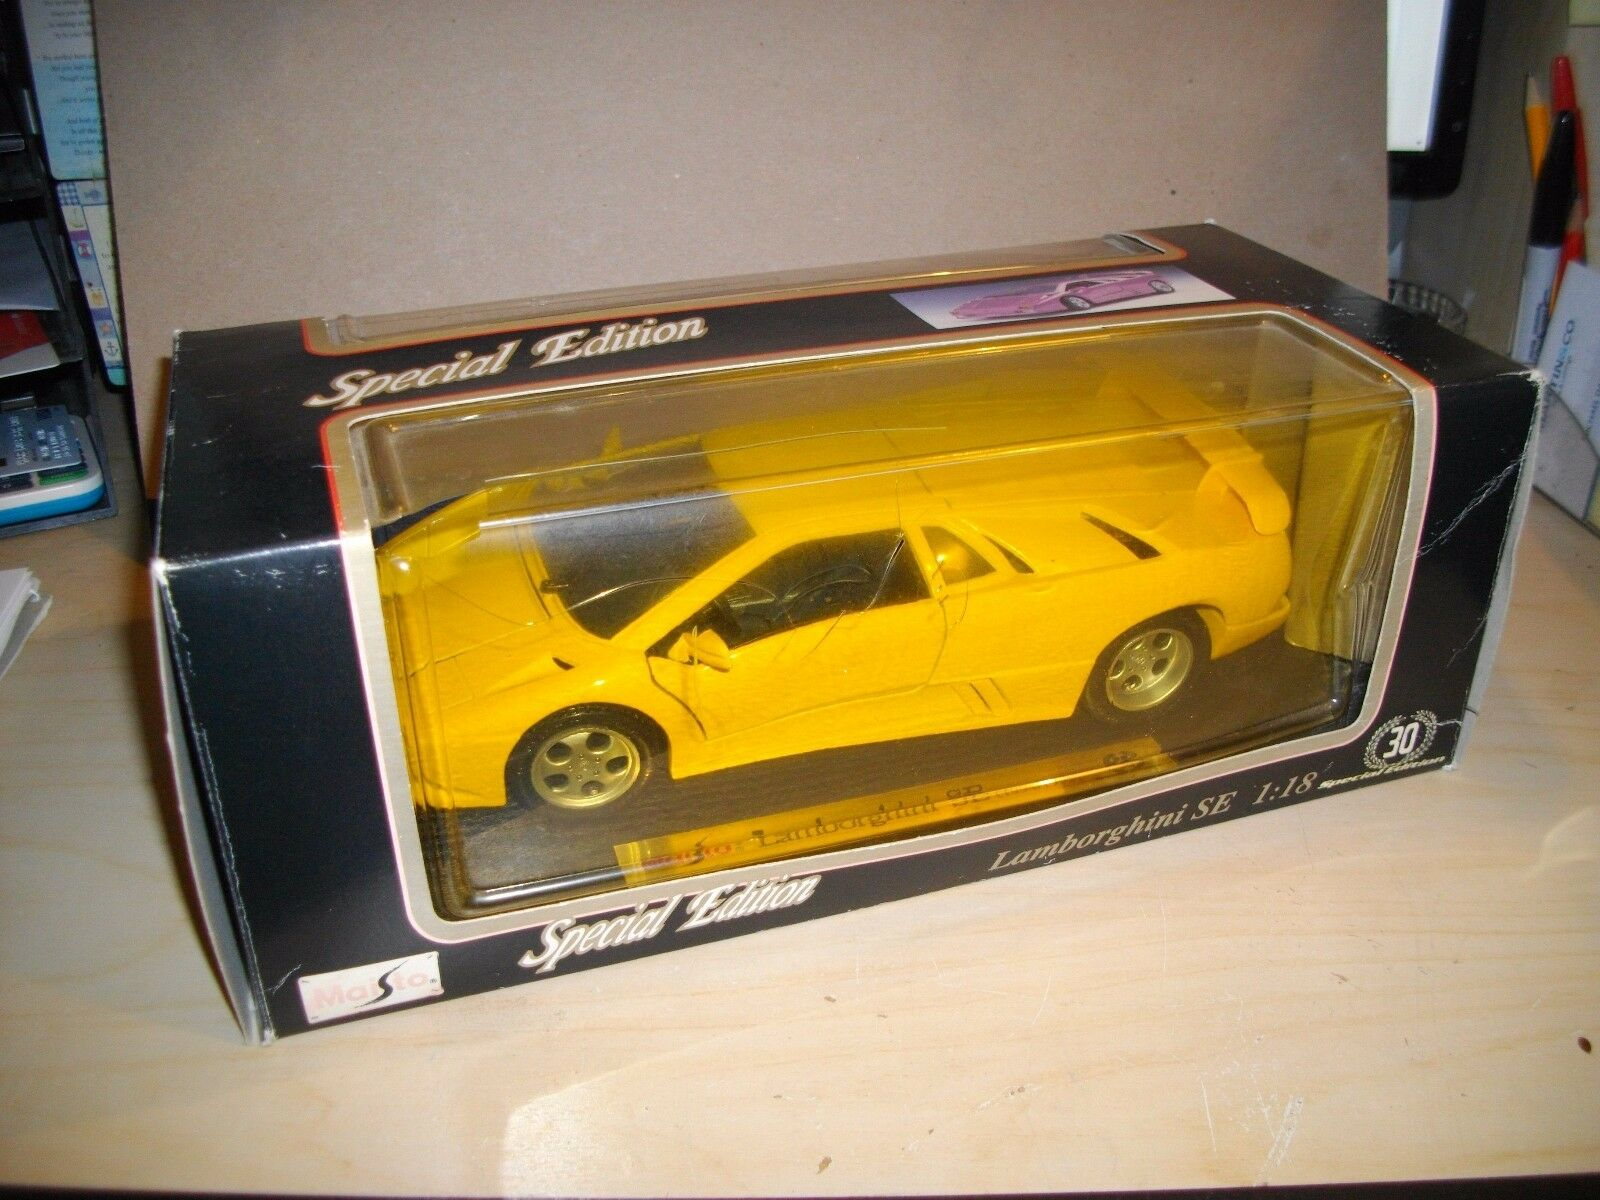 NEW Boxed 1 18th Scale Diecast Car Lamborghini SE 30y SPECIAL EDITION Maisto